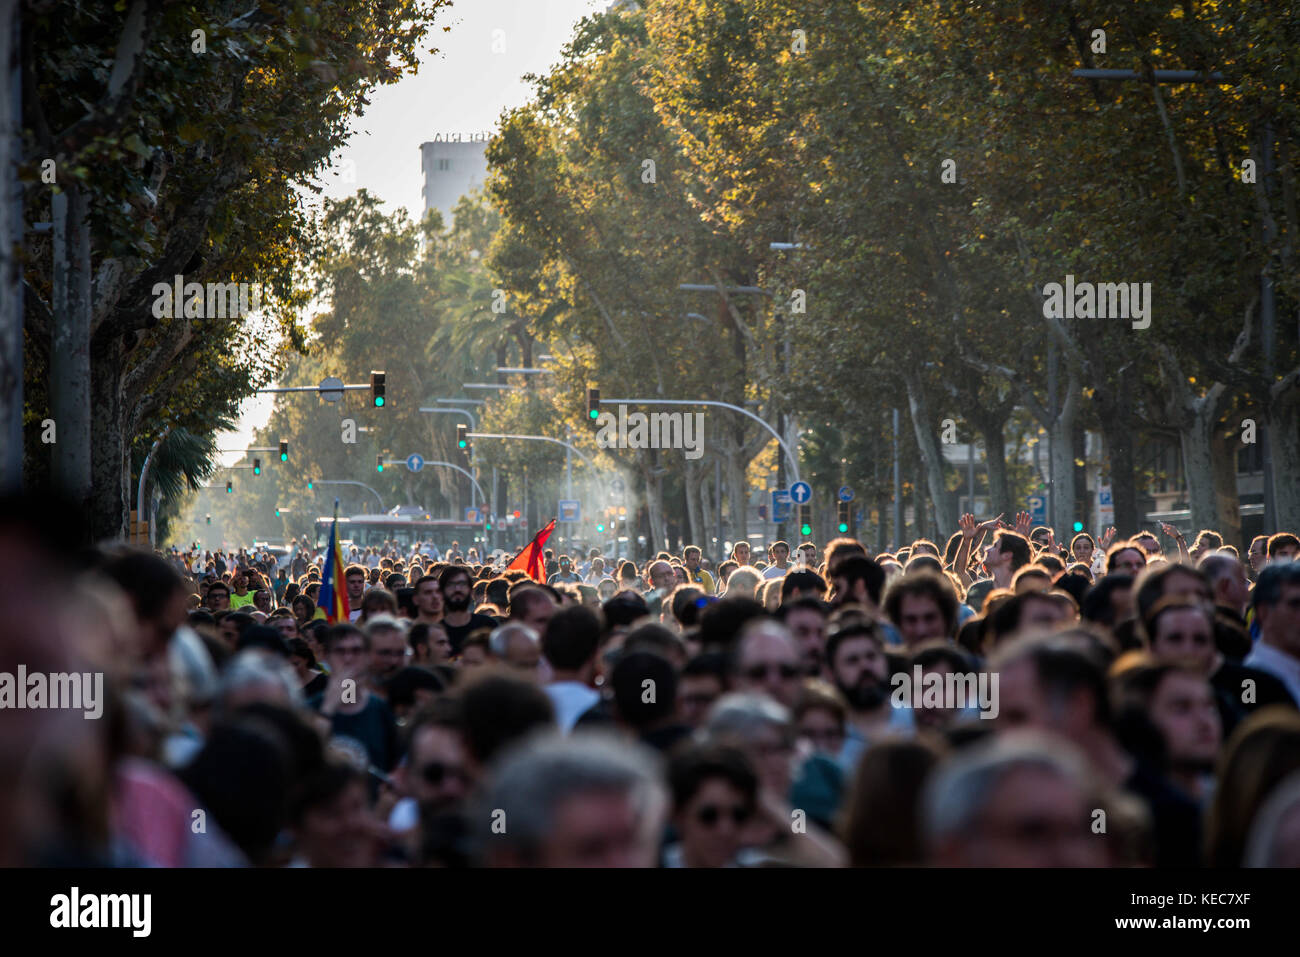 Barcelona, Catalonia, Spain. 3rd Oct, 2017. Thousands of citizens gather in Plaza Universitat during a regional - Stock Image